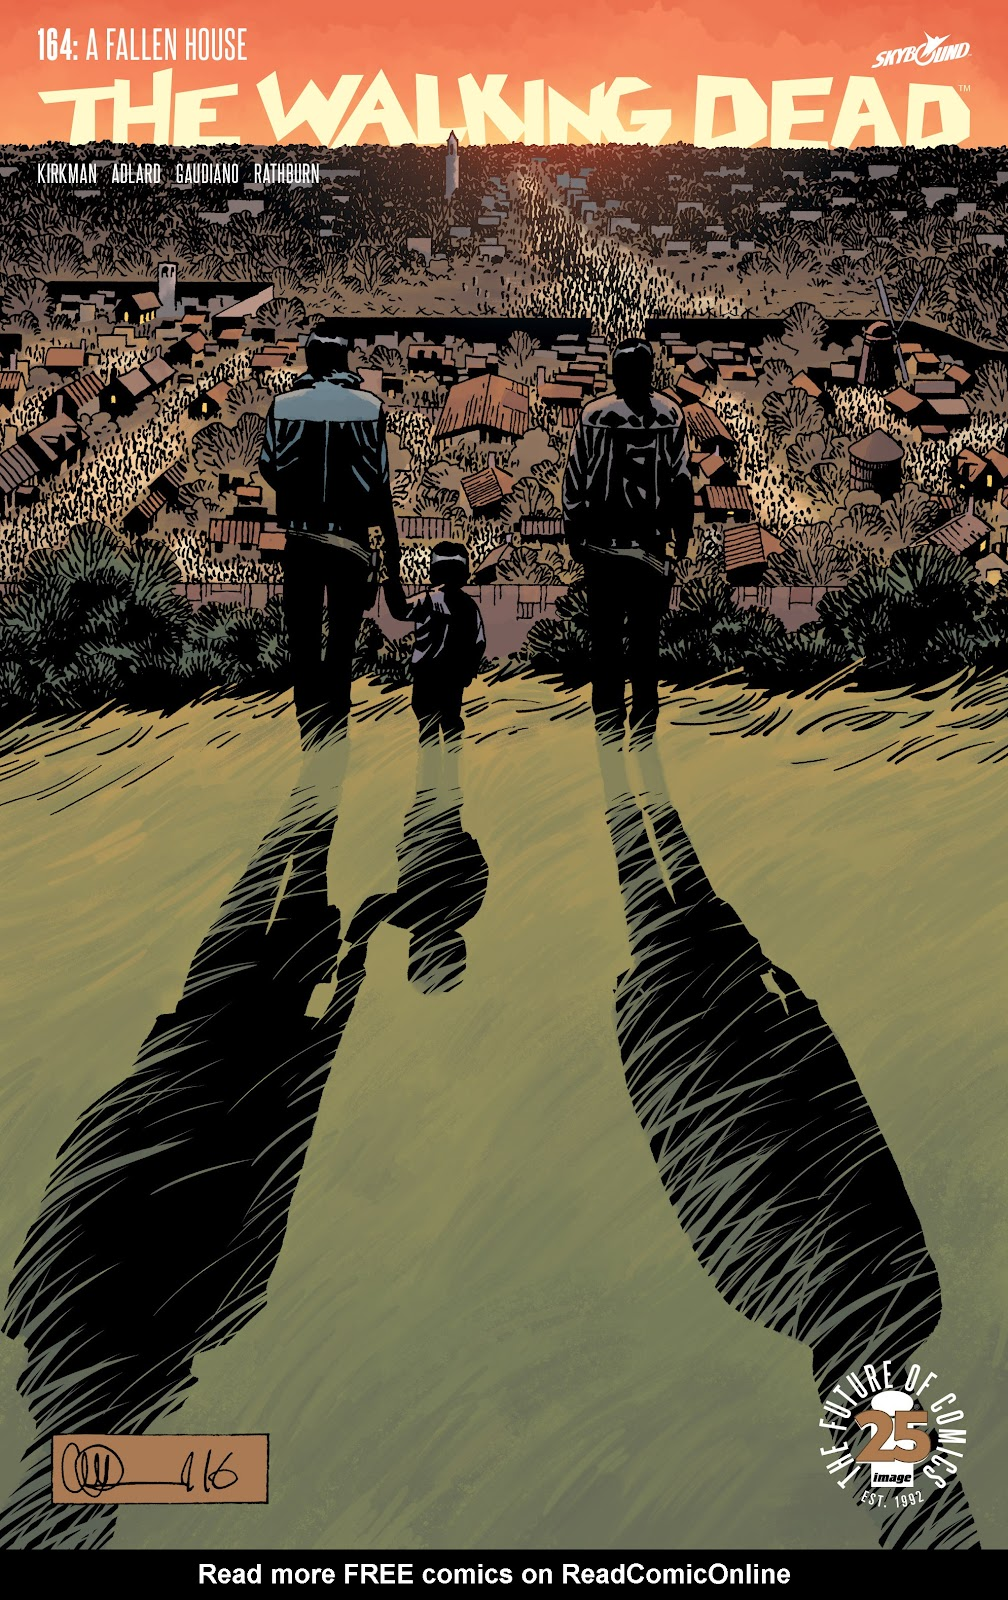 The Walking Dead Issue #164 Page 1